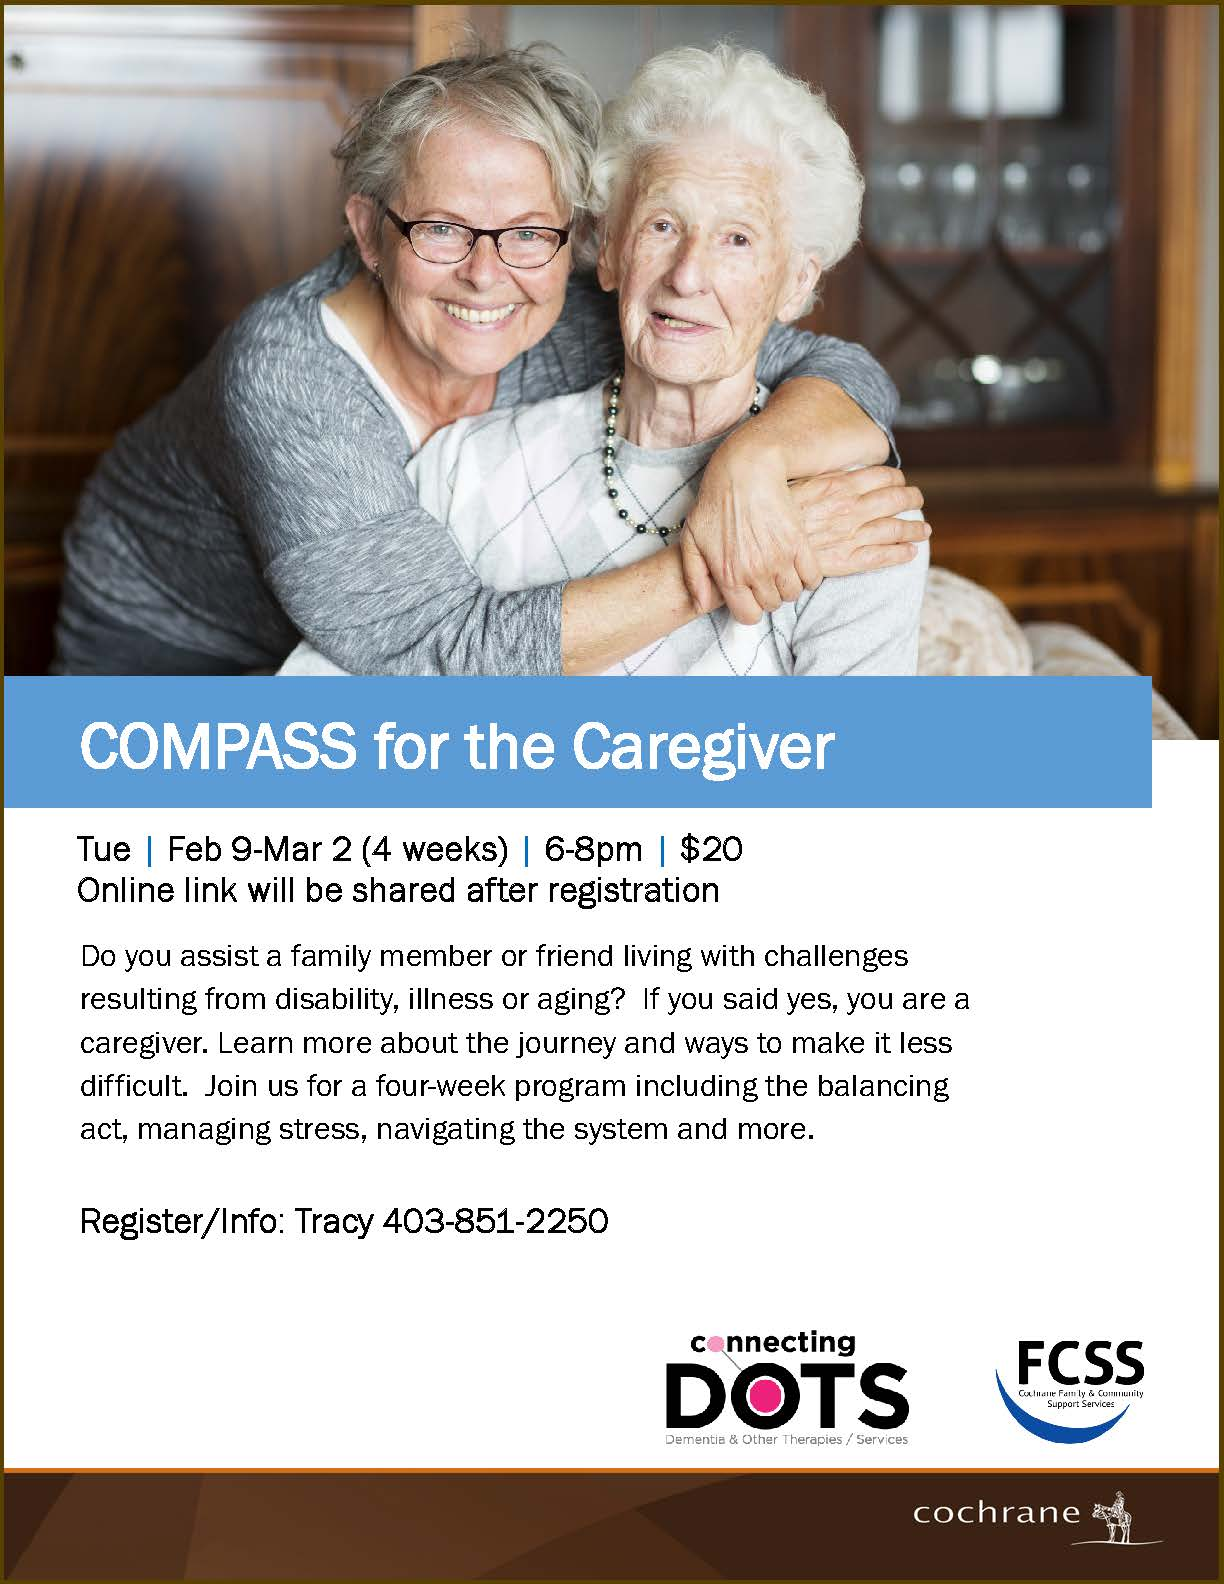 COMPASS for the Caregiver Poster